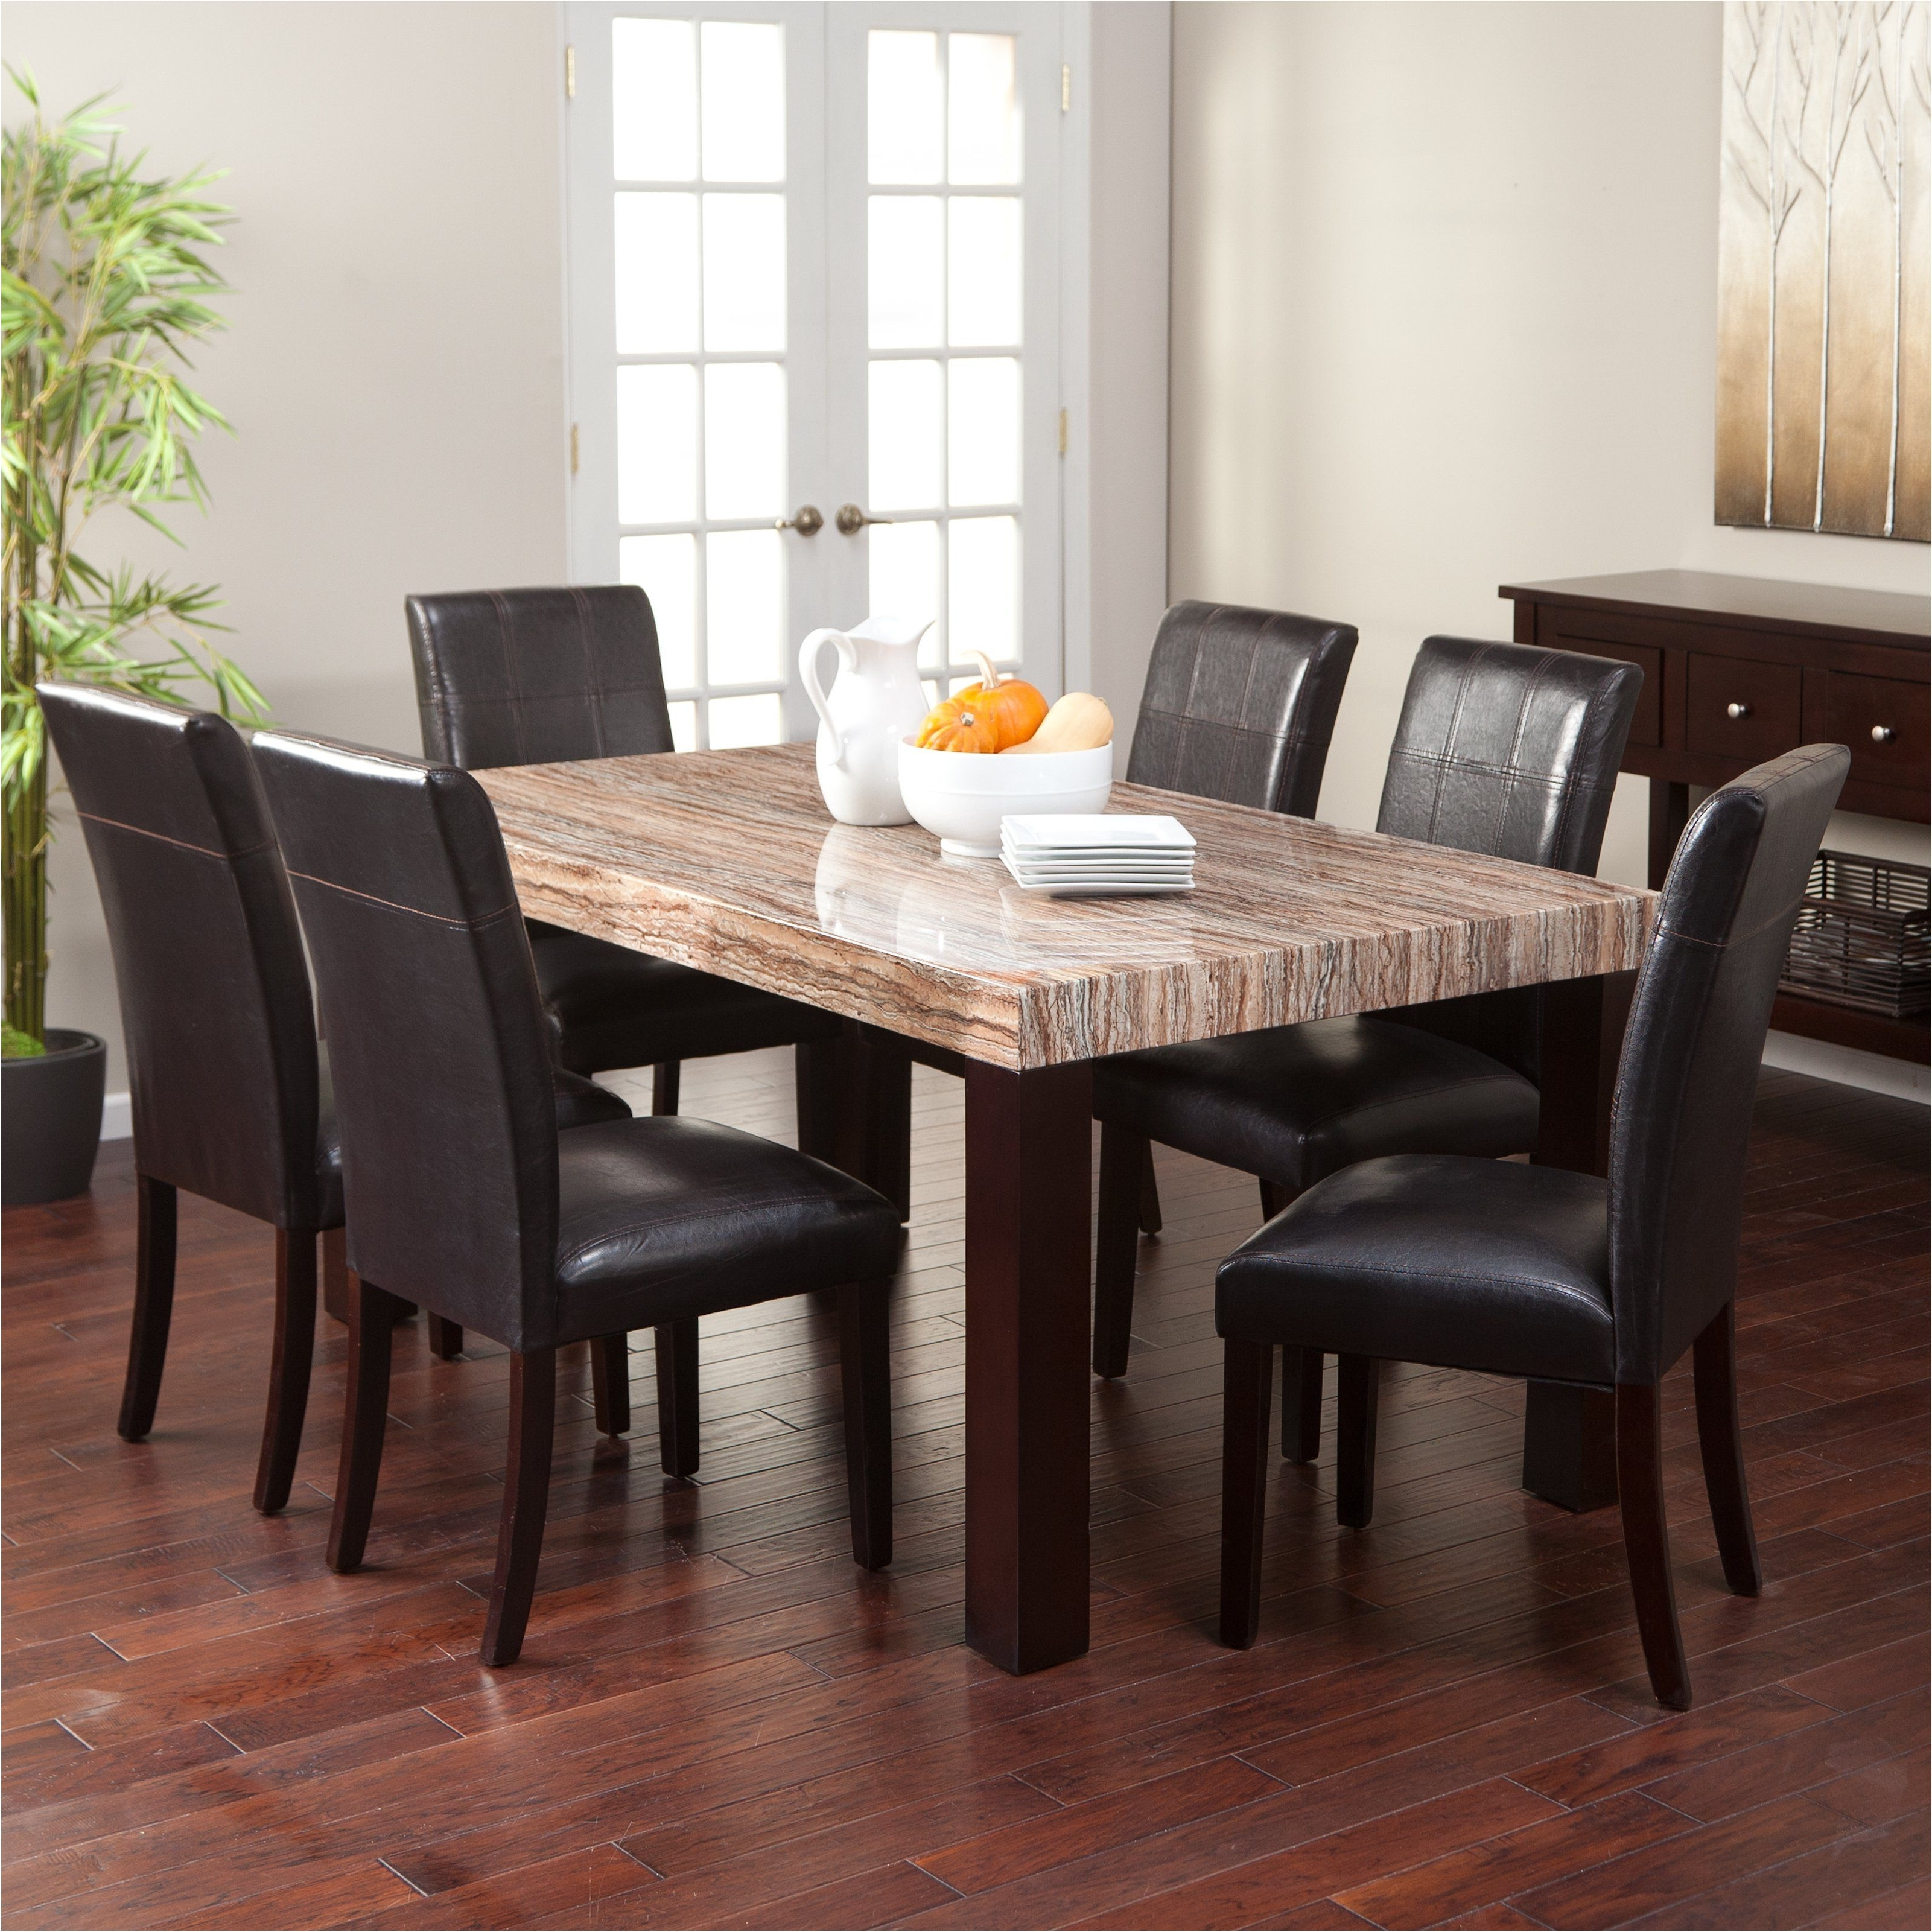 Terrific Glamorous Dinner Room Table Set 24 Green Dining Be Black Inside 2018 Black 8 Seater Dining Tables (View 17 of 25)